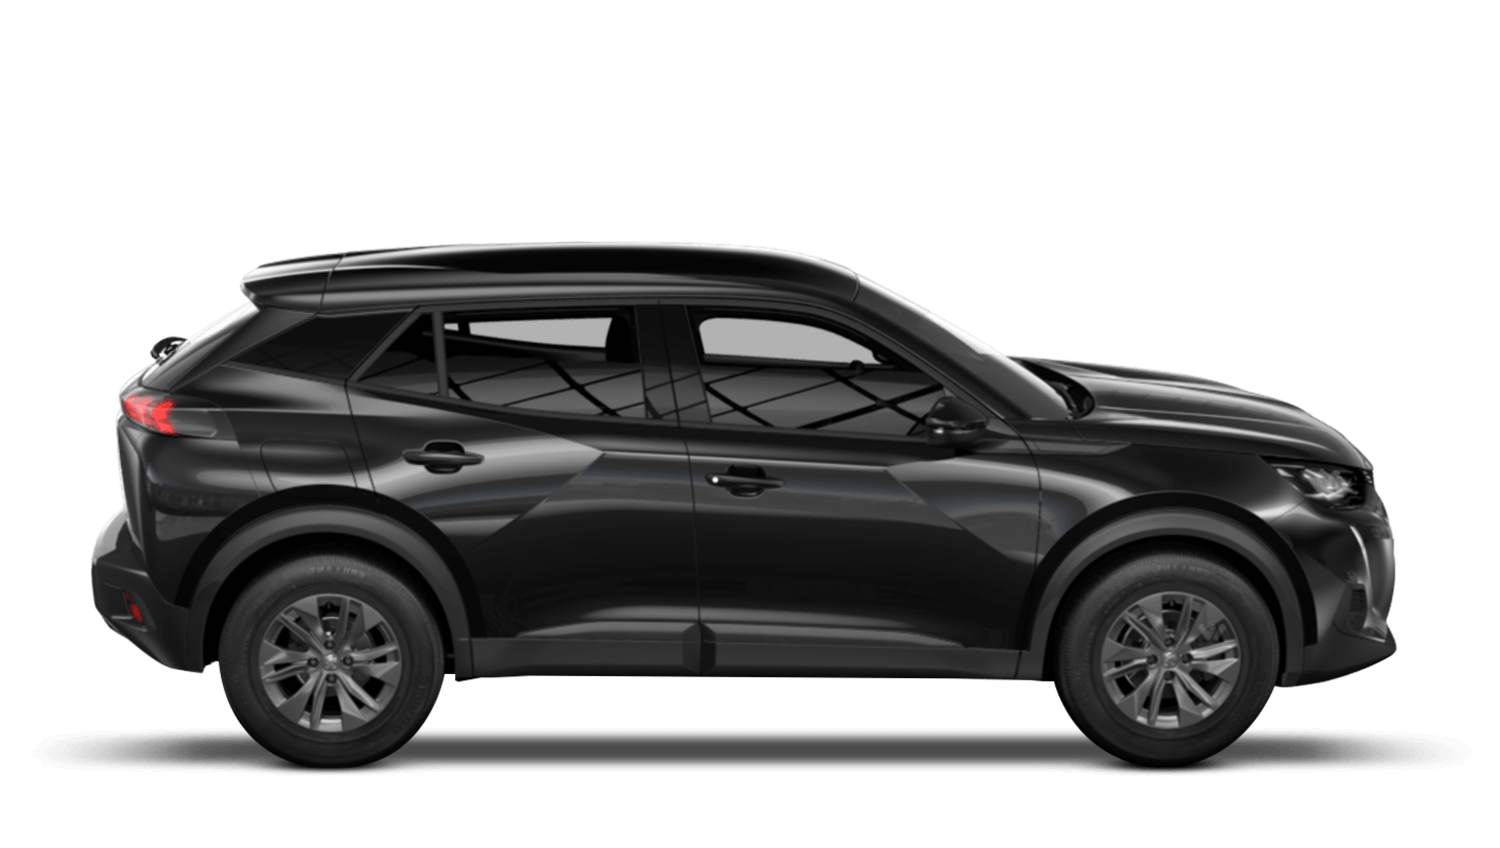 Nera Black All-new Peugeot 2008 SUV